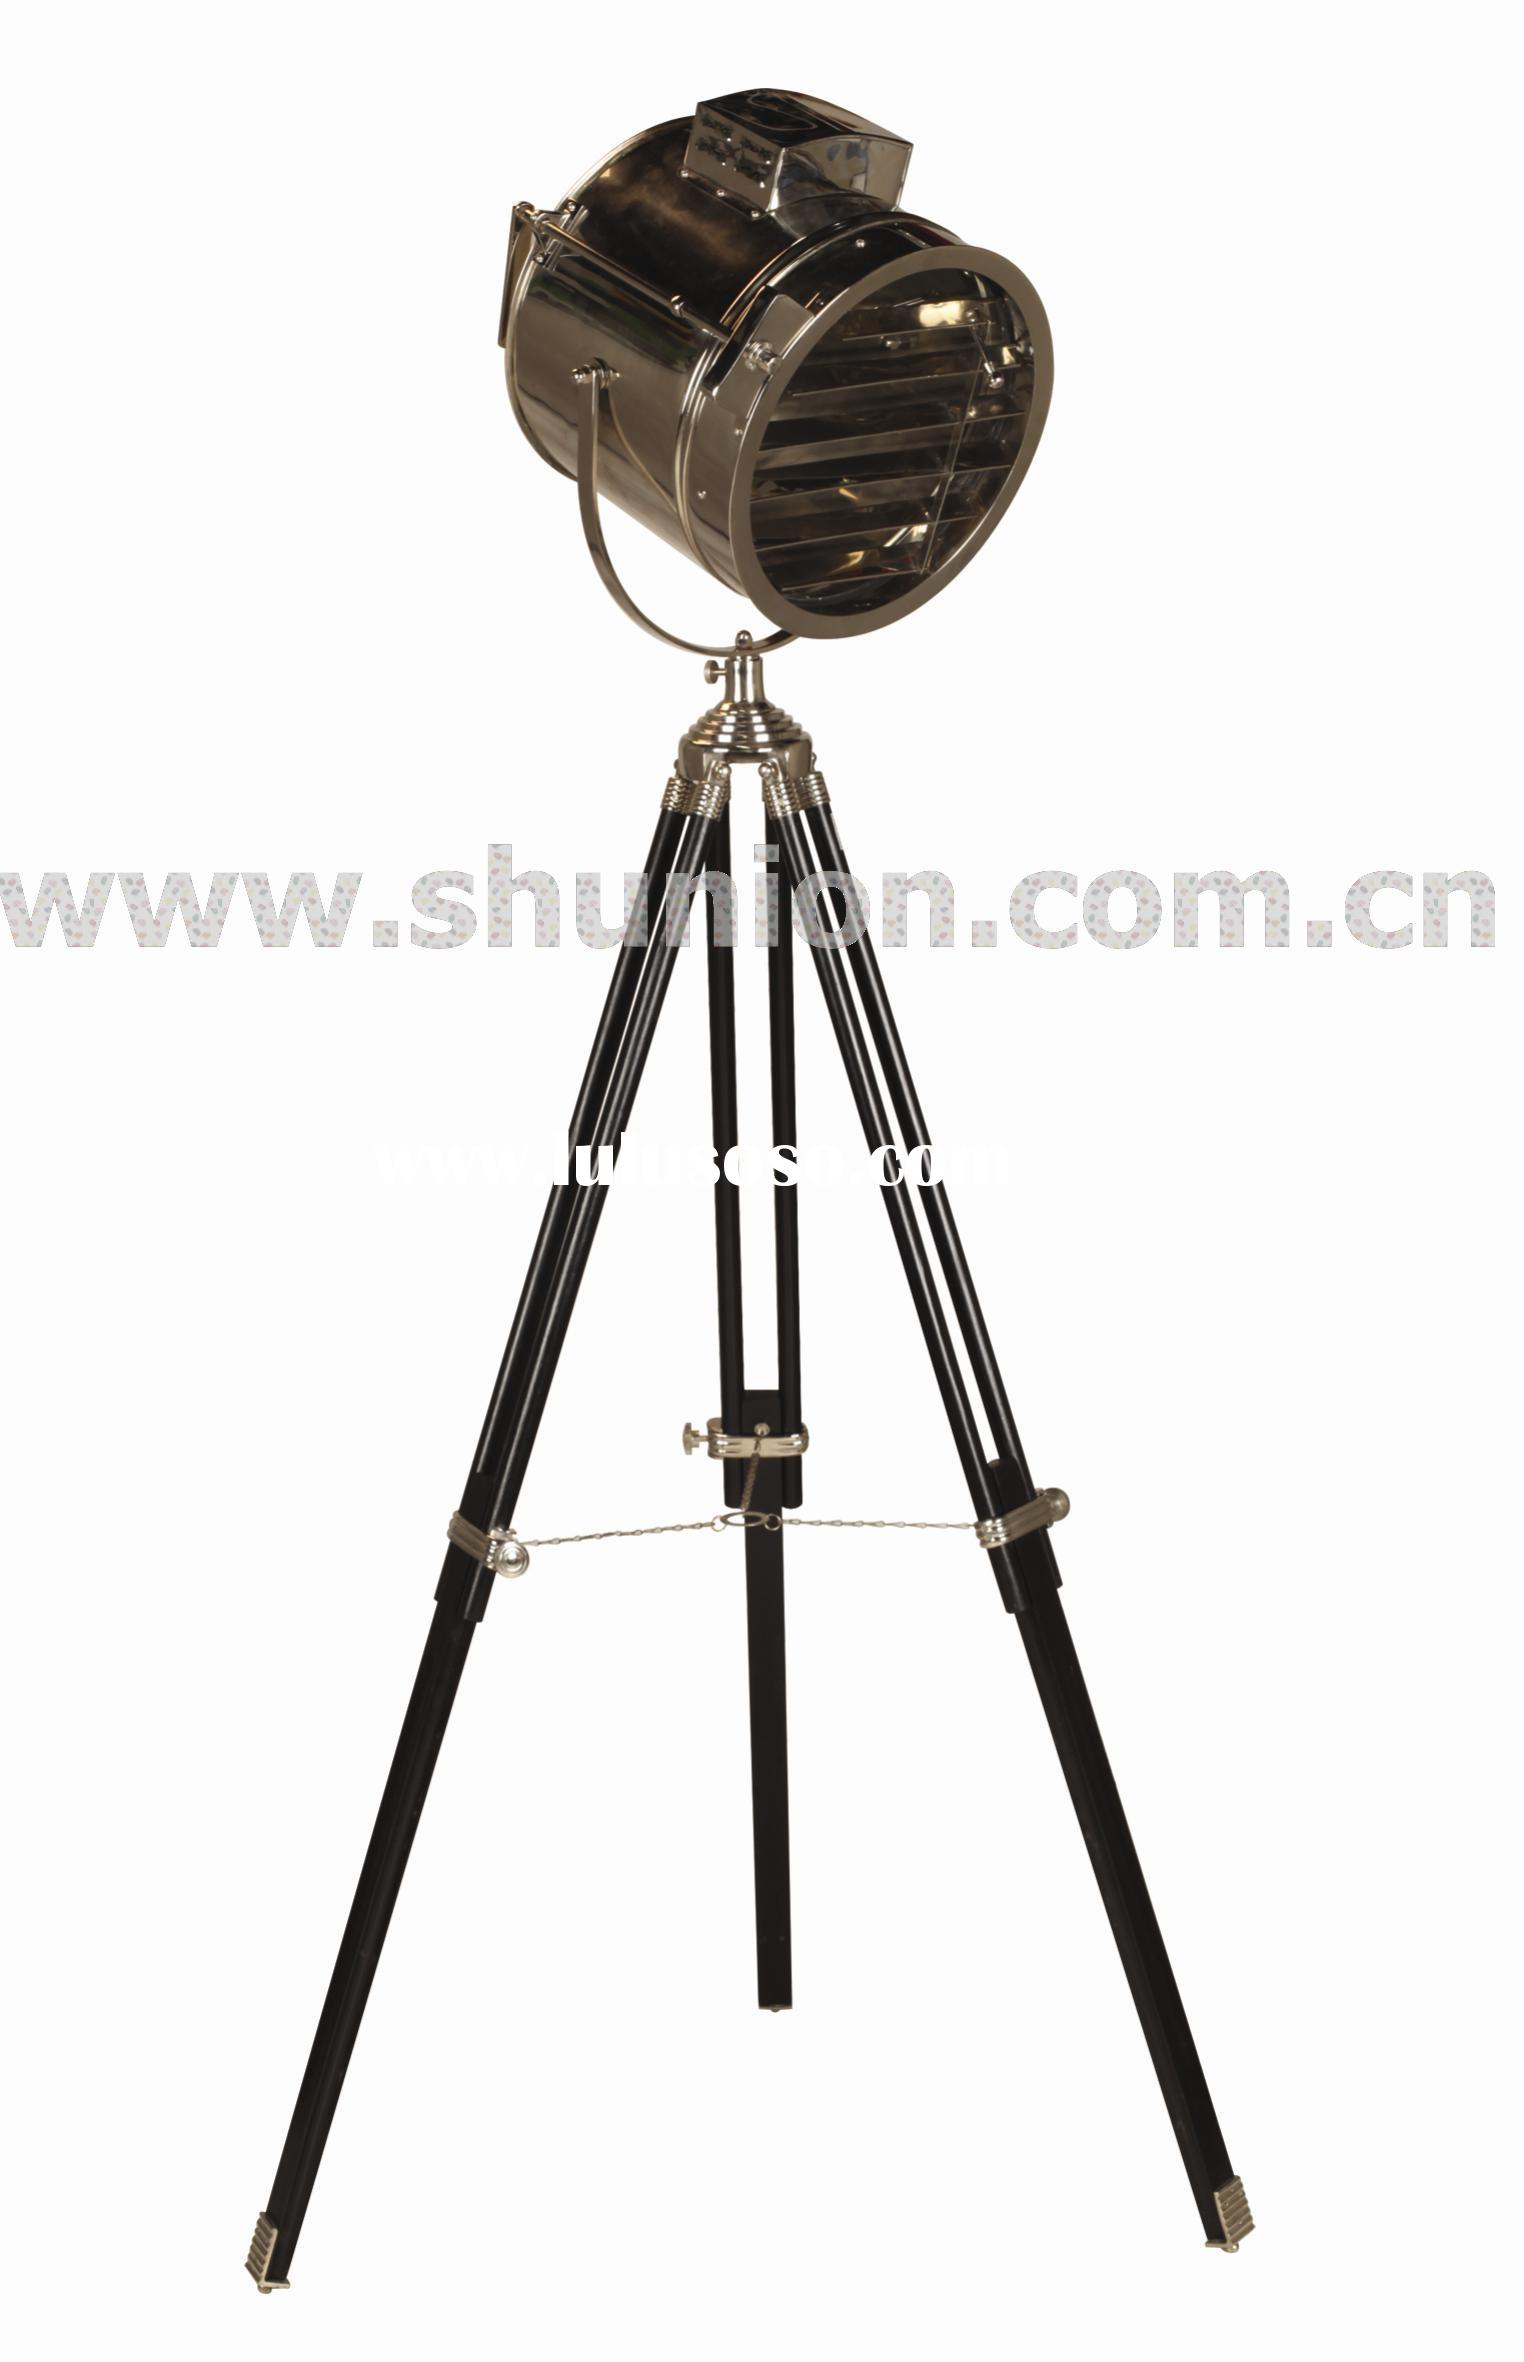 Normande desk lamps review spotlight stand floor lampivory pearl spotlight floor lamps on tripod floor spotlight lamp mozeypictures